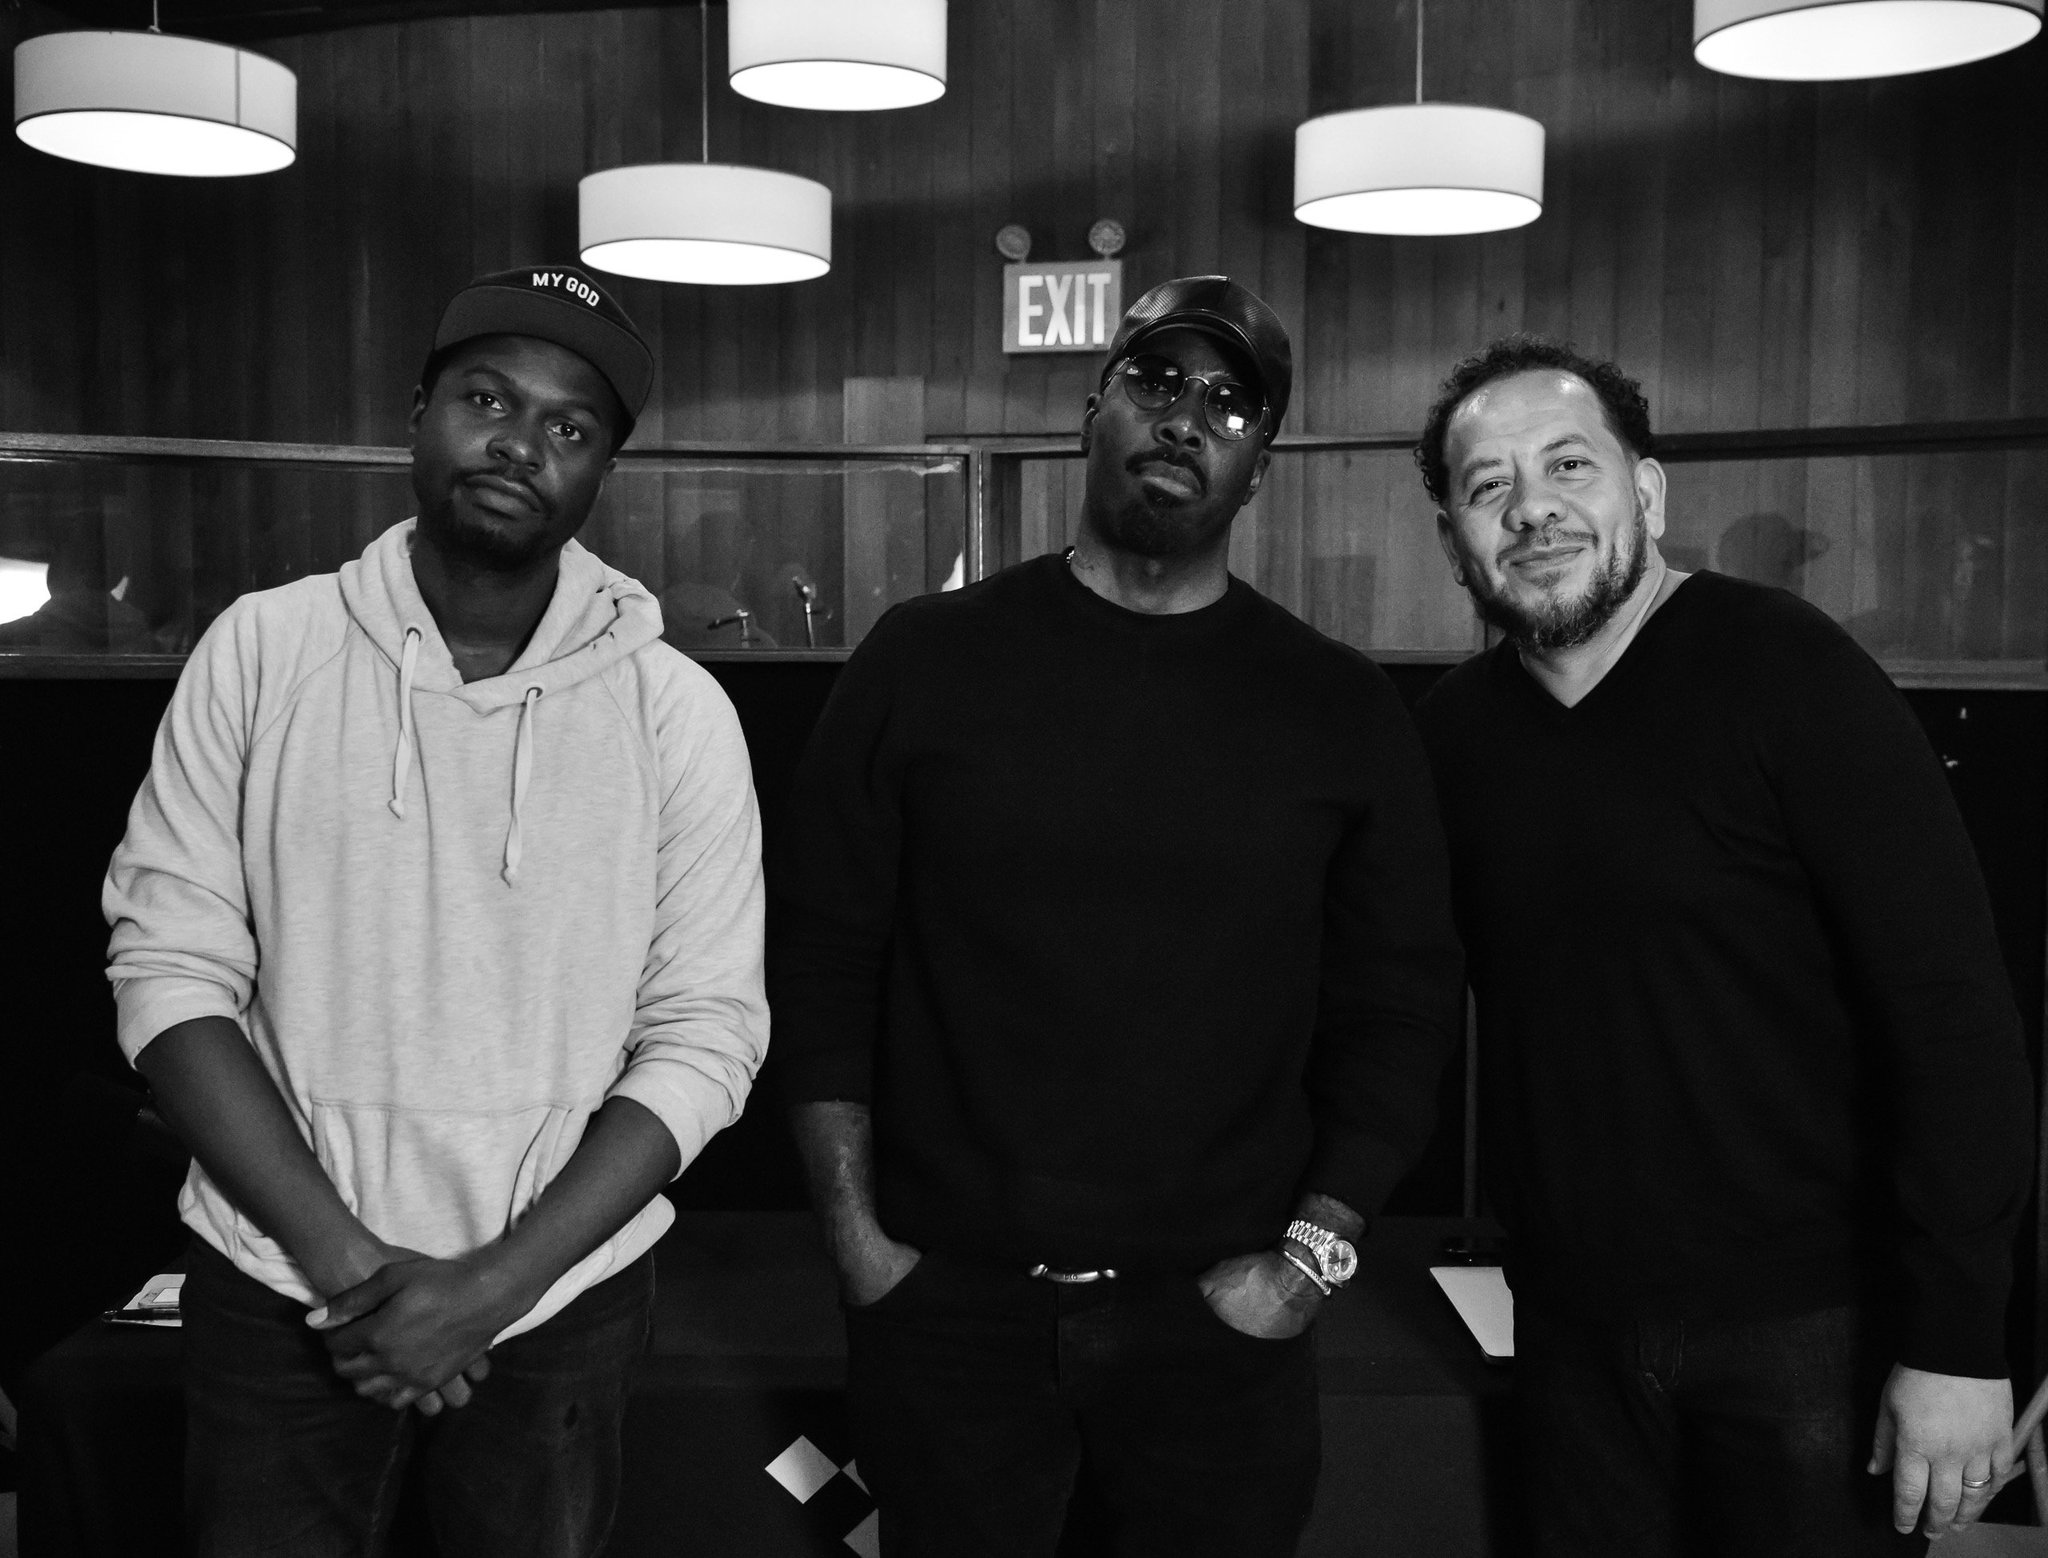 New! #RapRadarPodcast @iammarkpitts Video: https://t.co/UA1btCAr3p Audio: https://t.co/SgO8o78CRk #TIDAL https://t.co/tninfbwVvA